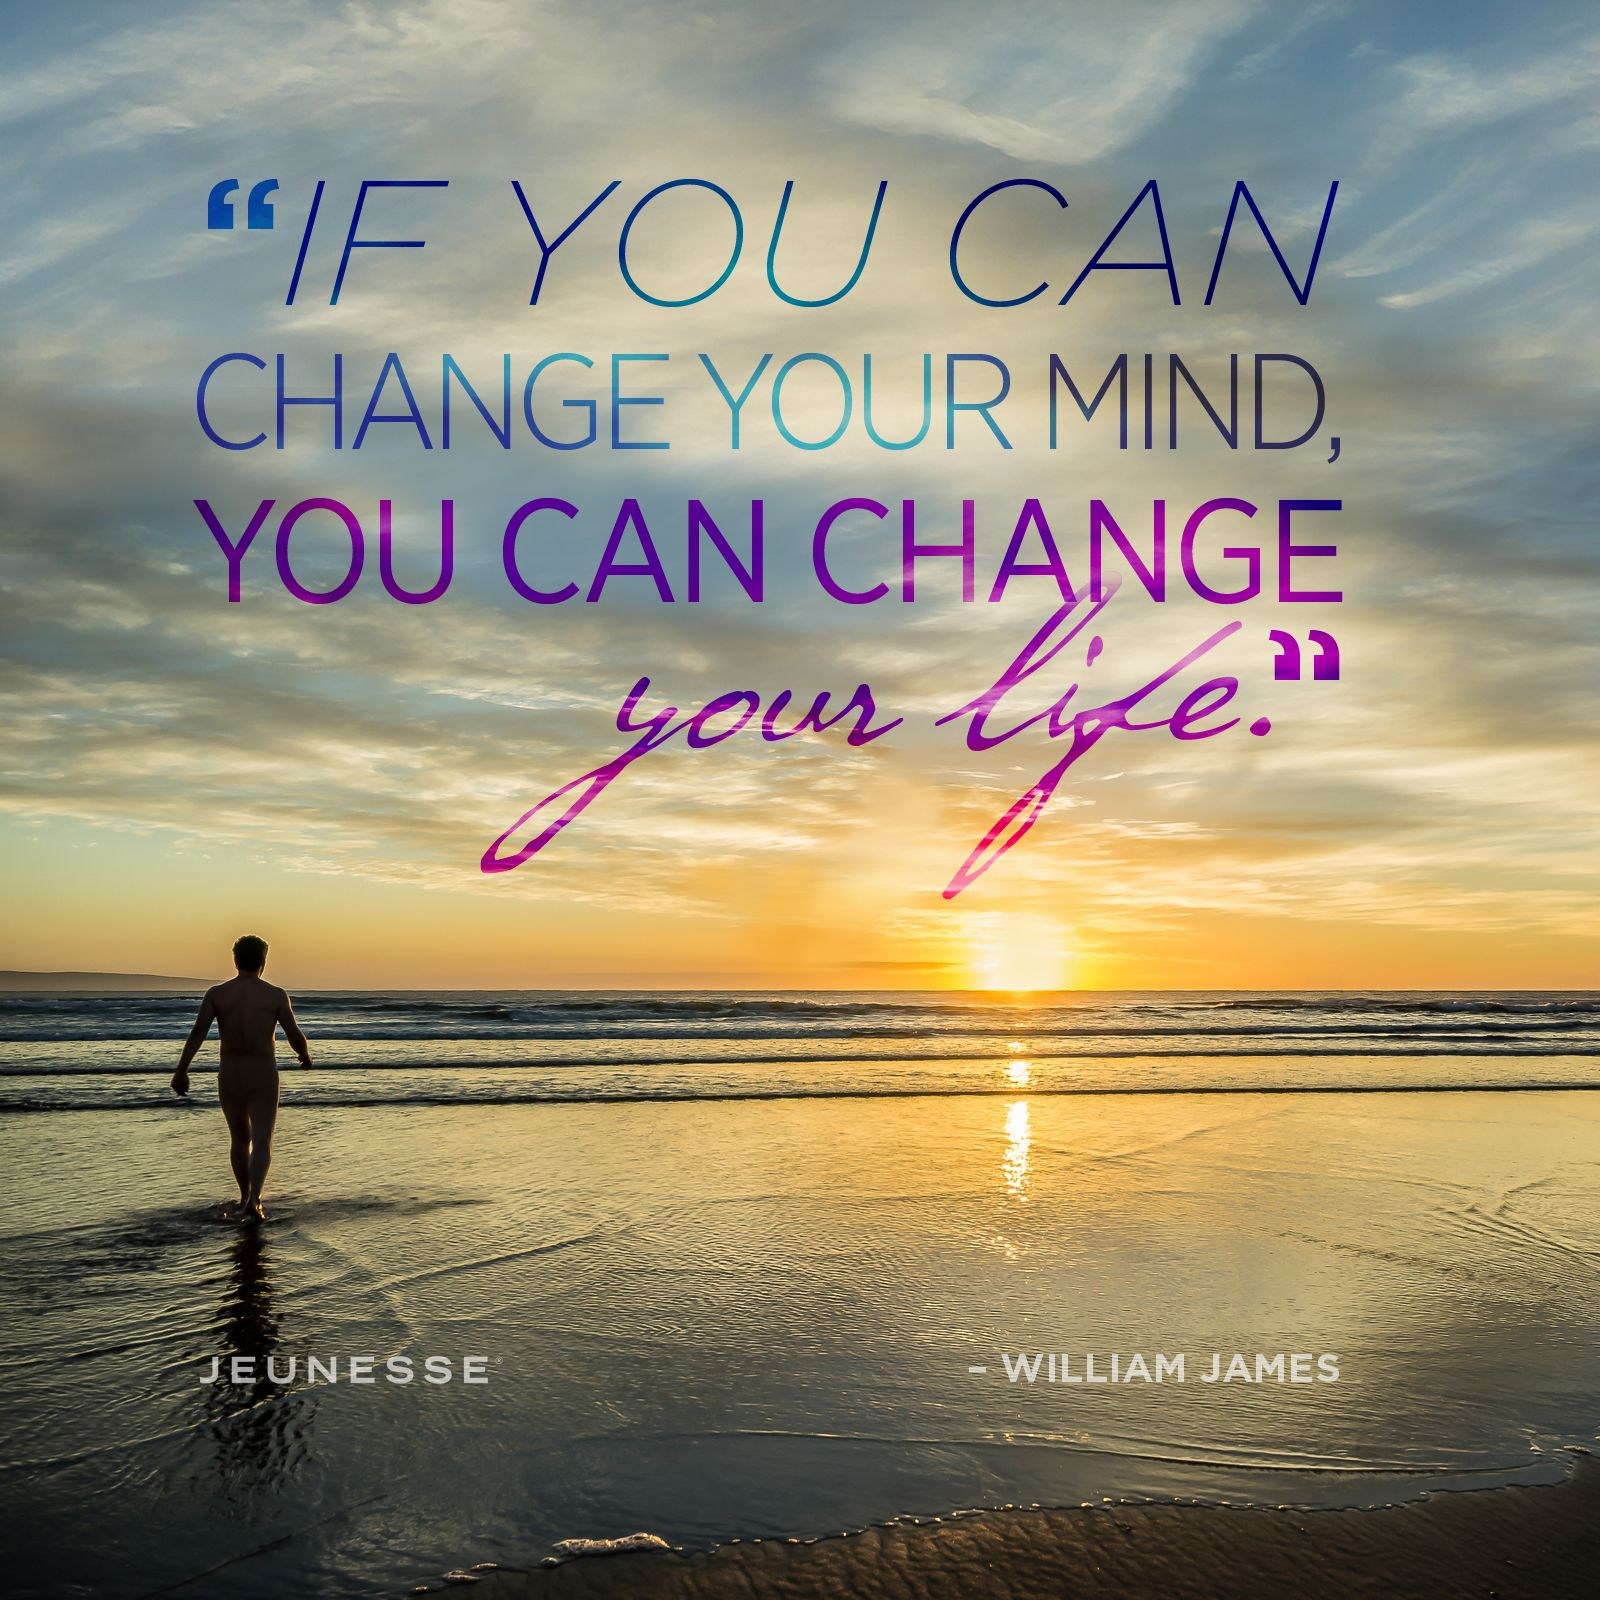 If you can change your mind, you can change your life ...